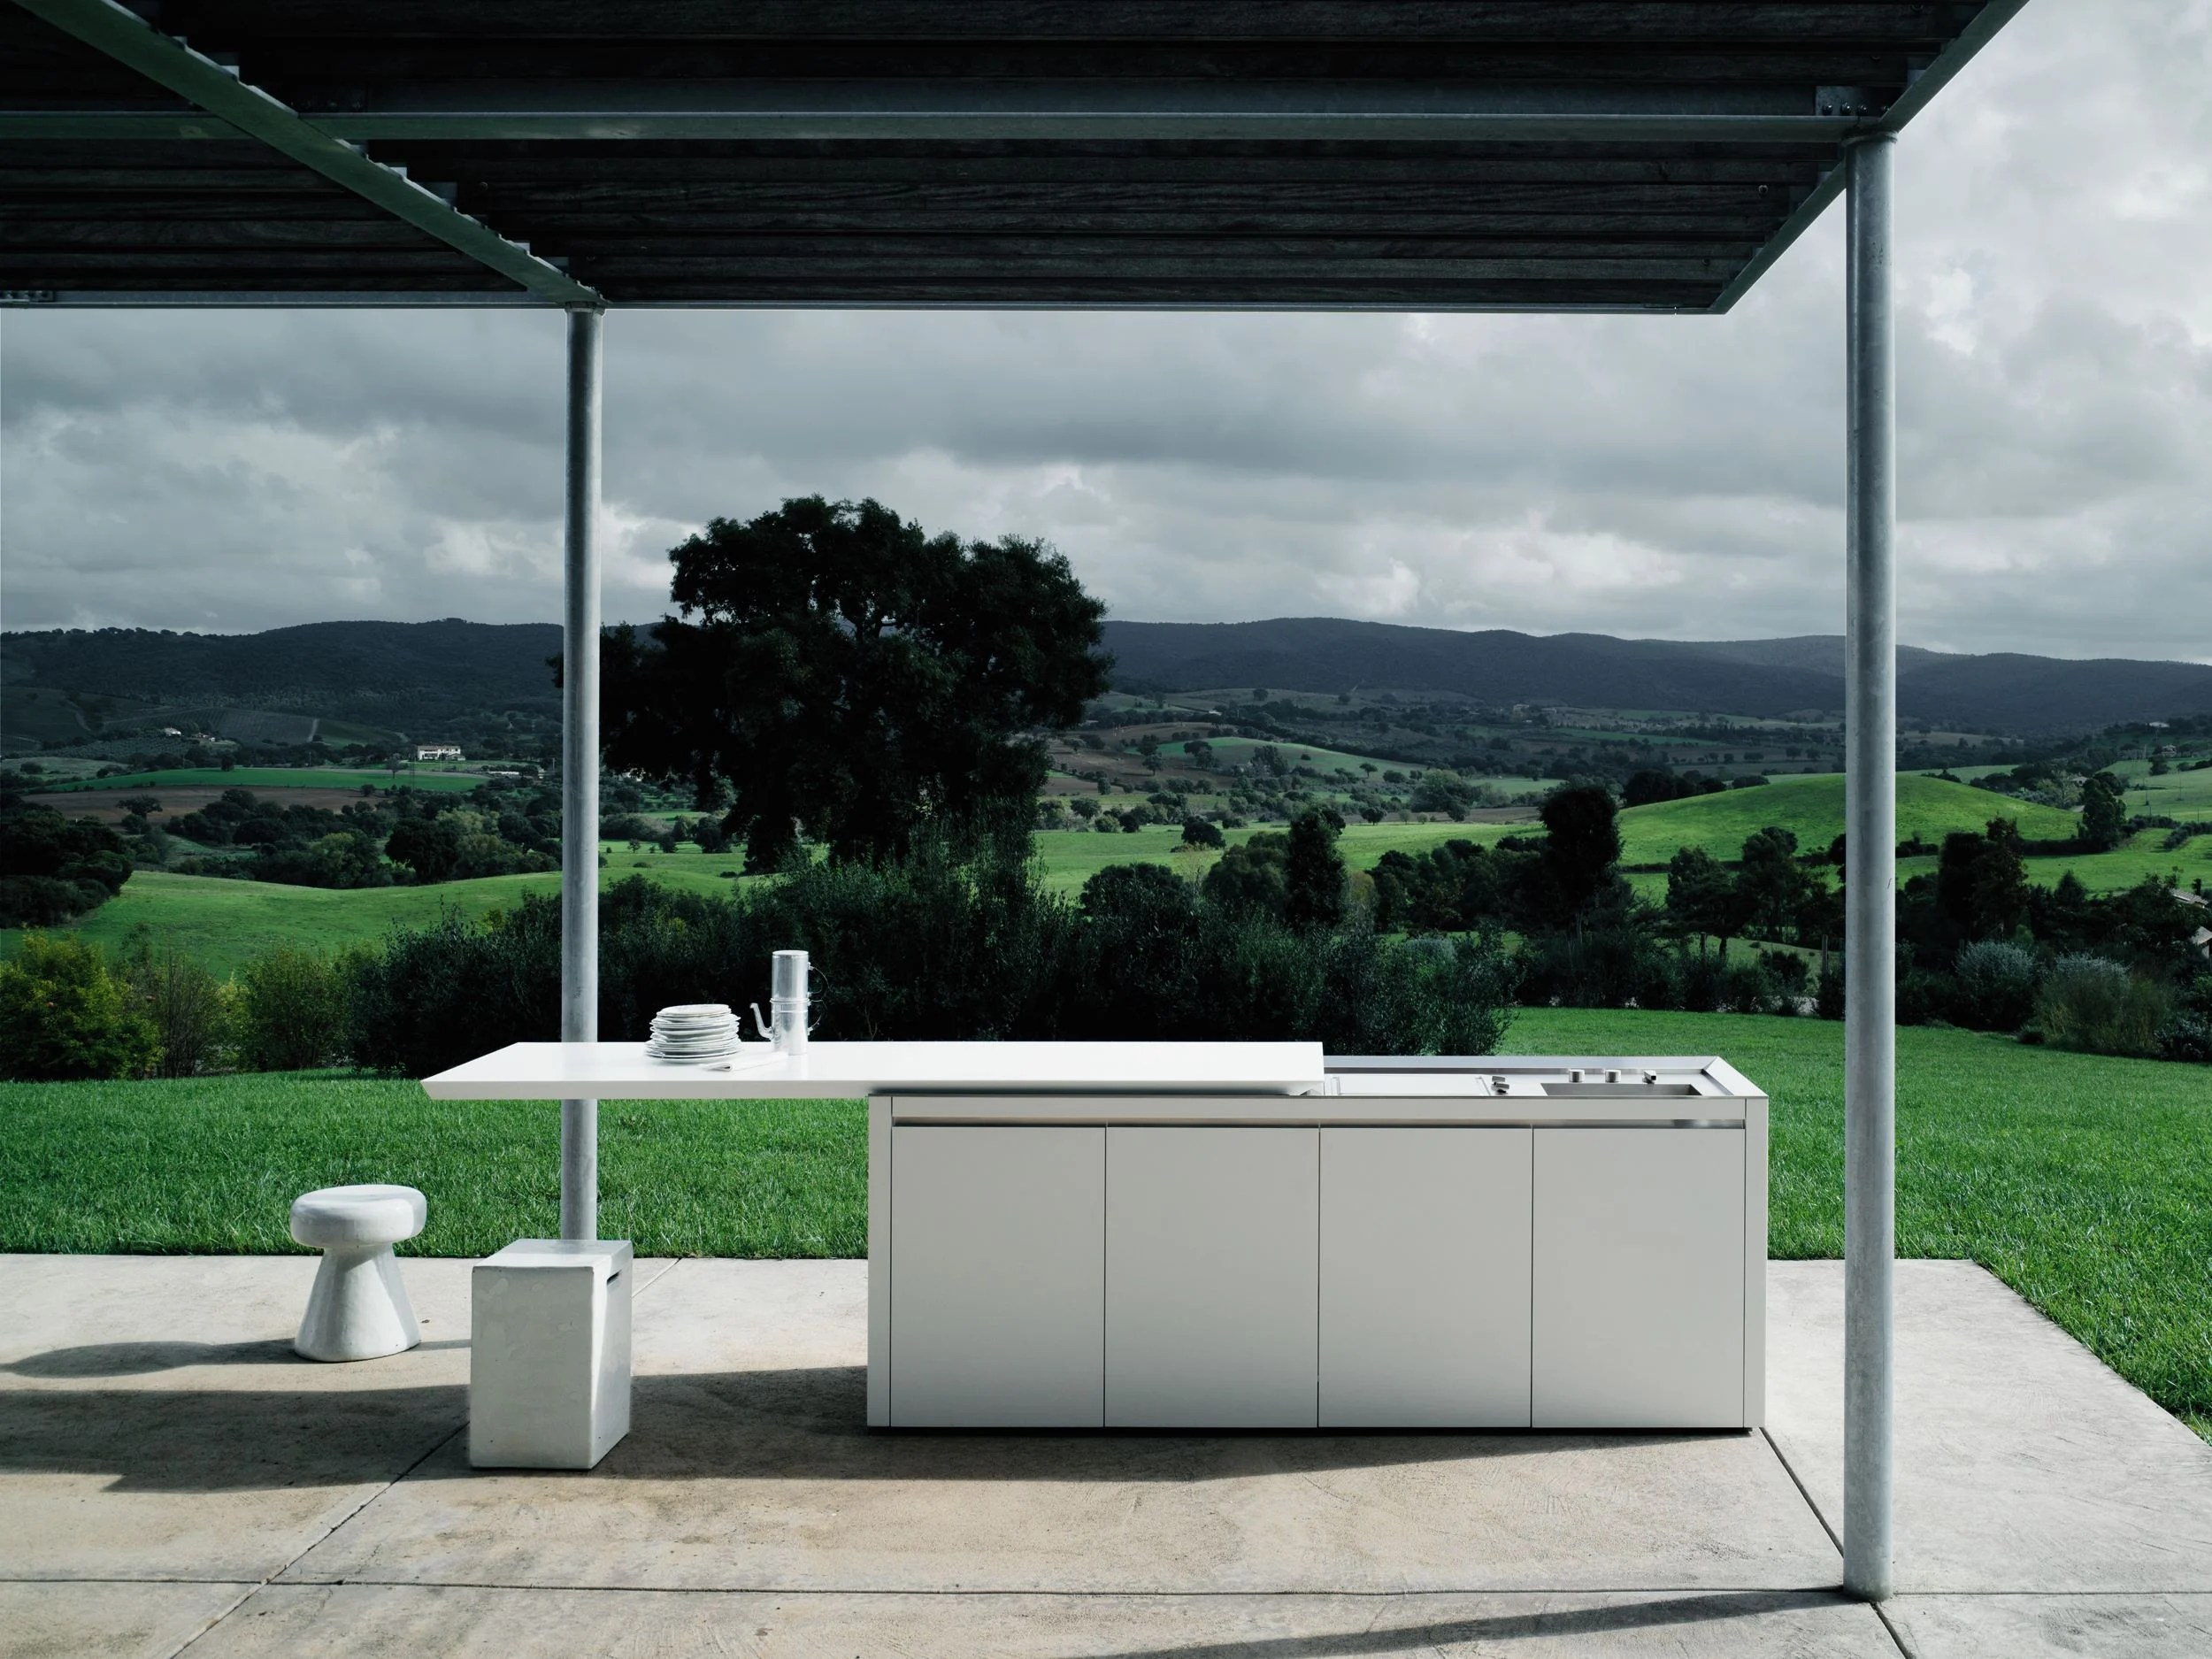 Cucine Esterne Da Giardino Corian Outdoor Kitchen K2 Outdoor By Boffi Design Norbert